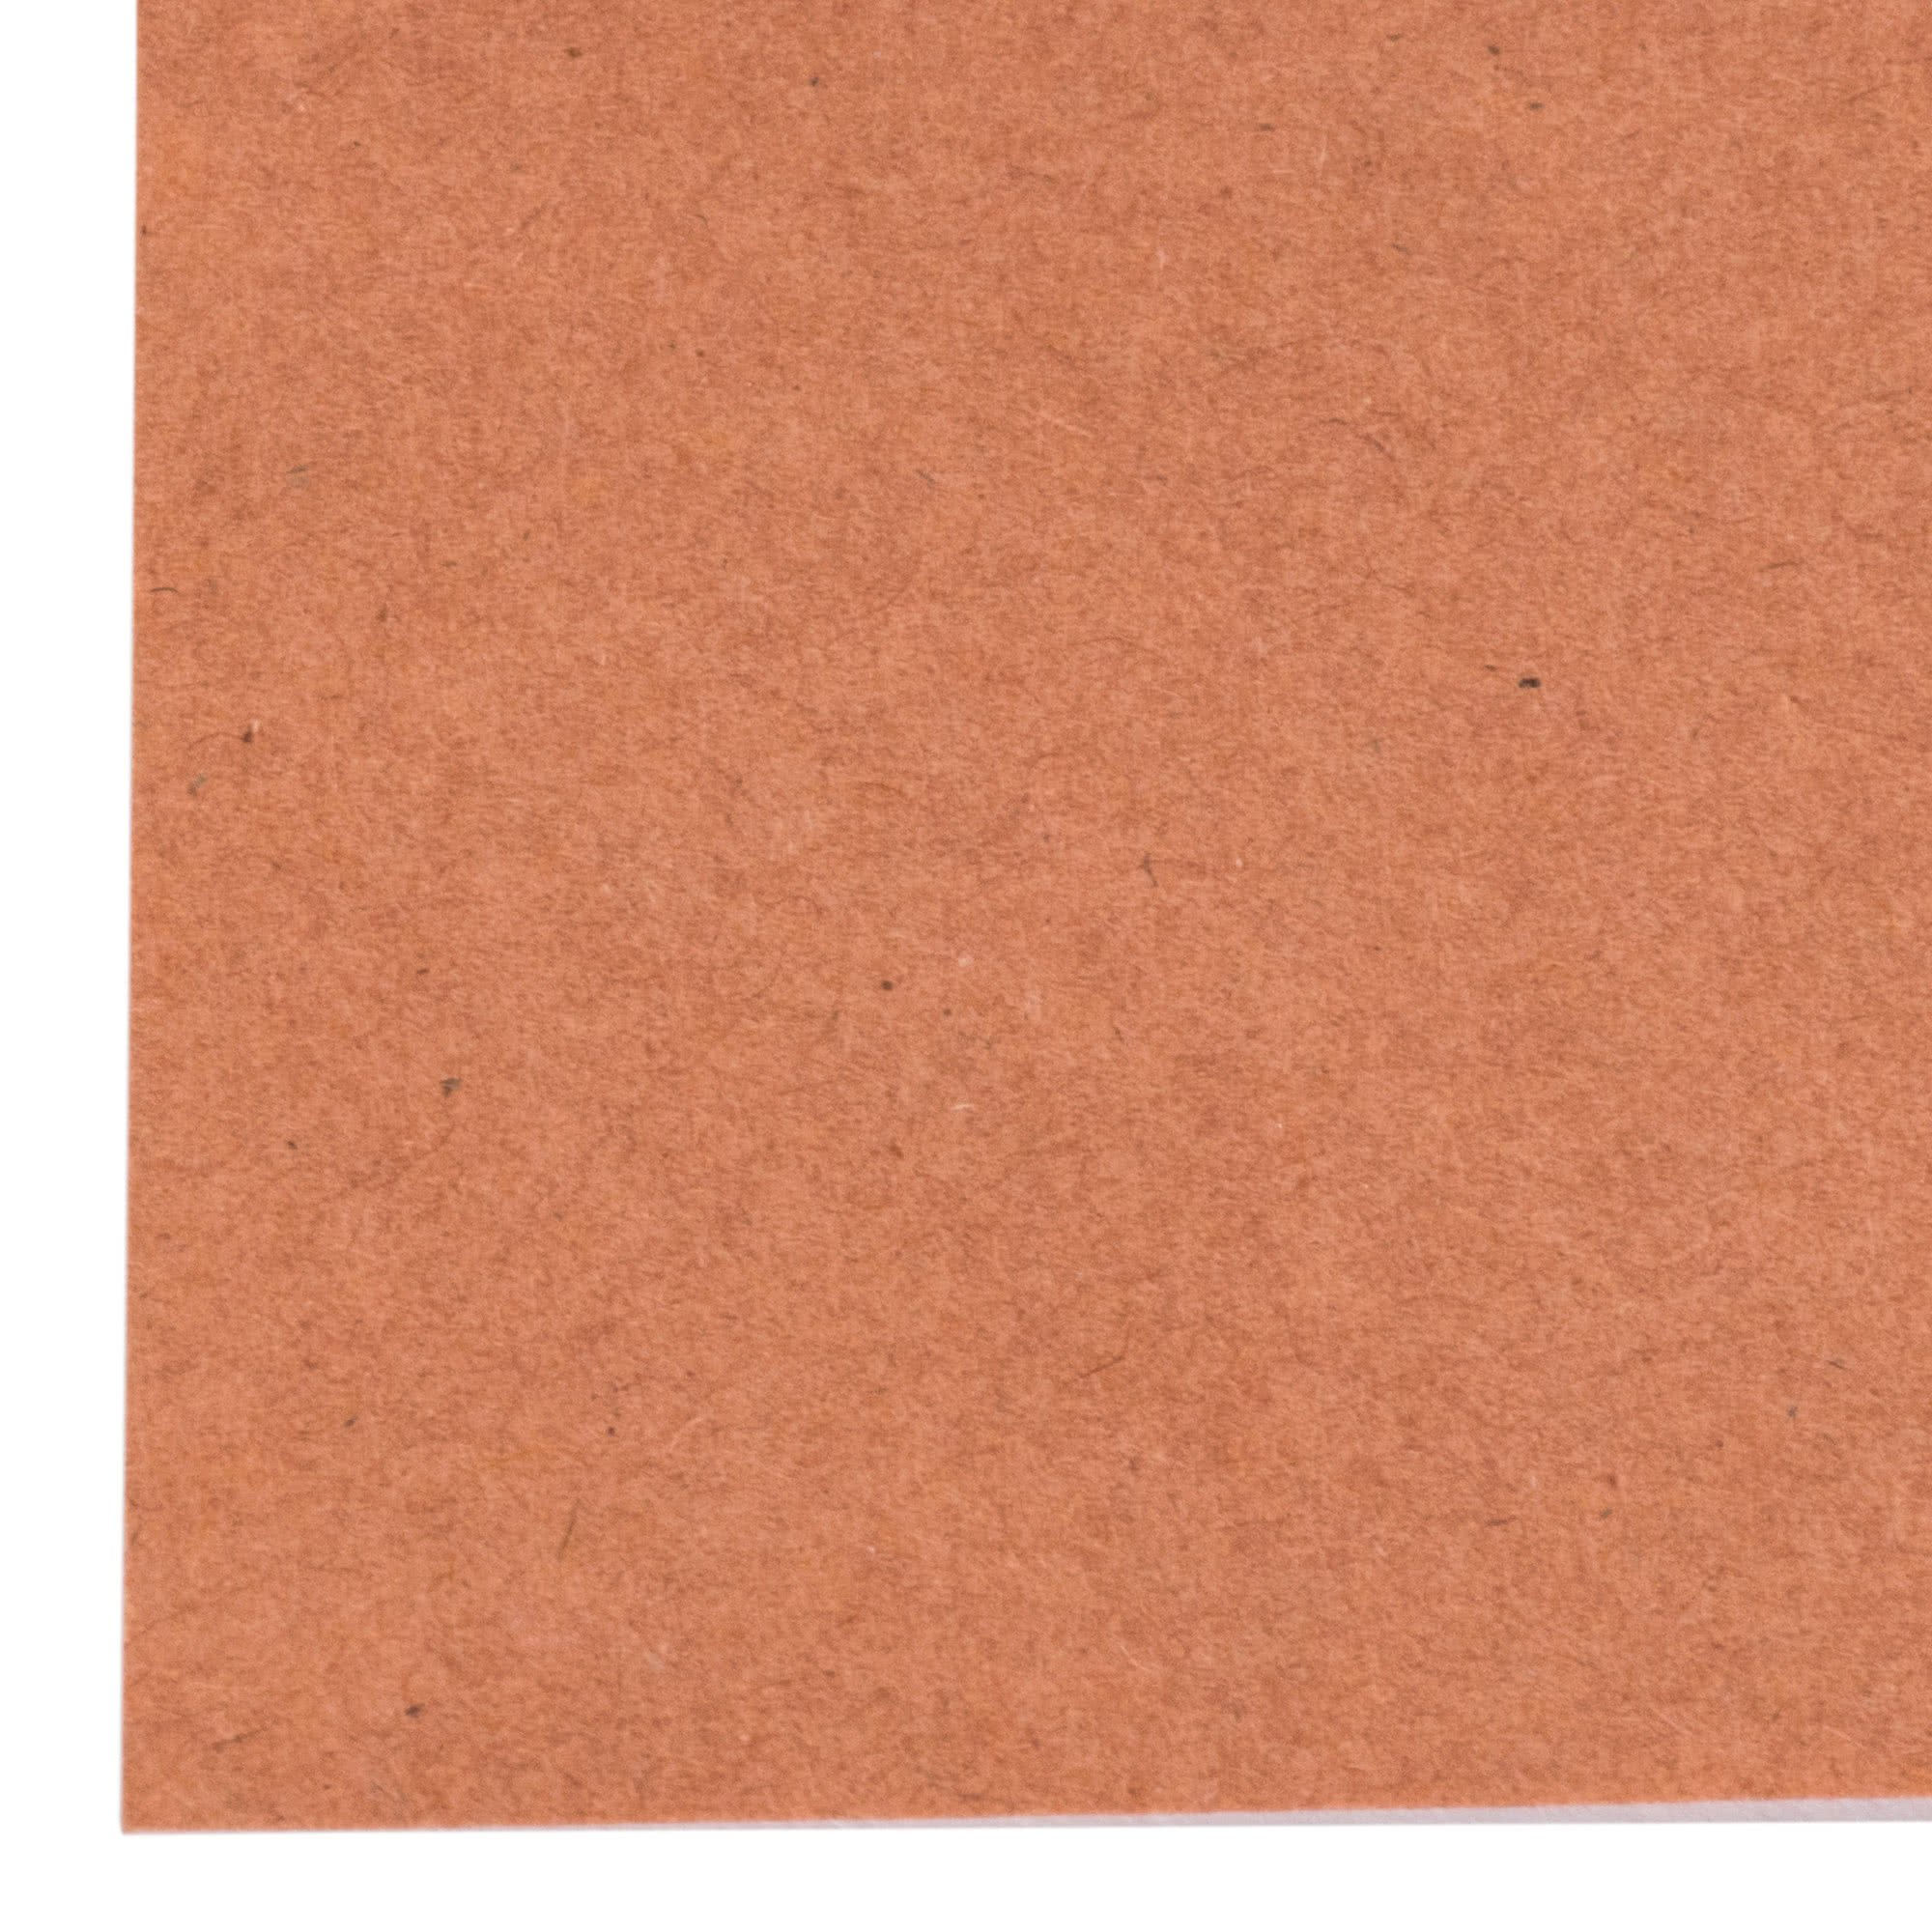 Peach Treated Butcher Paper Roll 24'' x 700' 40# by TableTop King by TableTop King (Image #3)